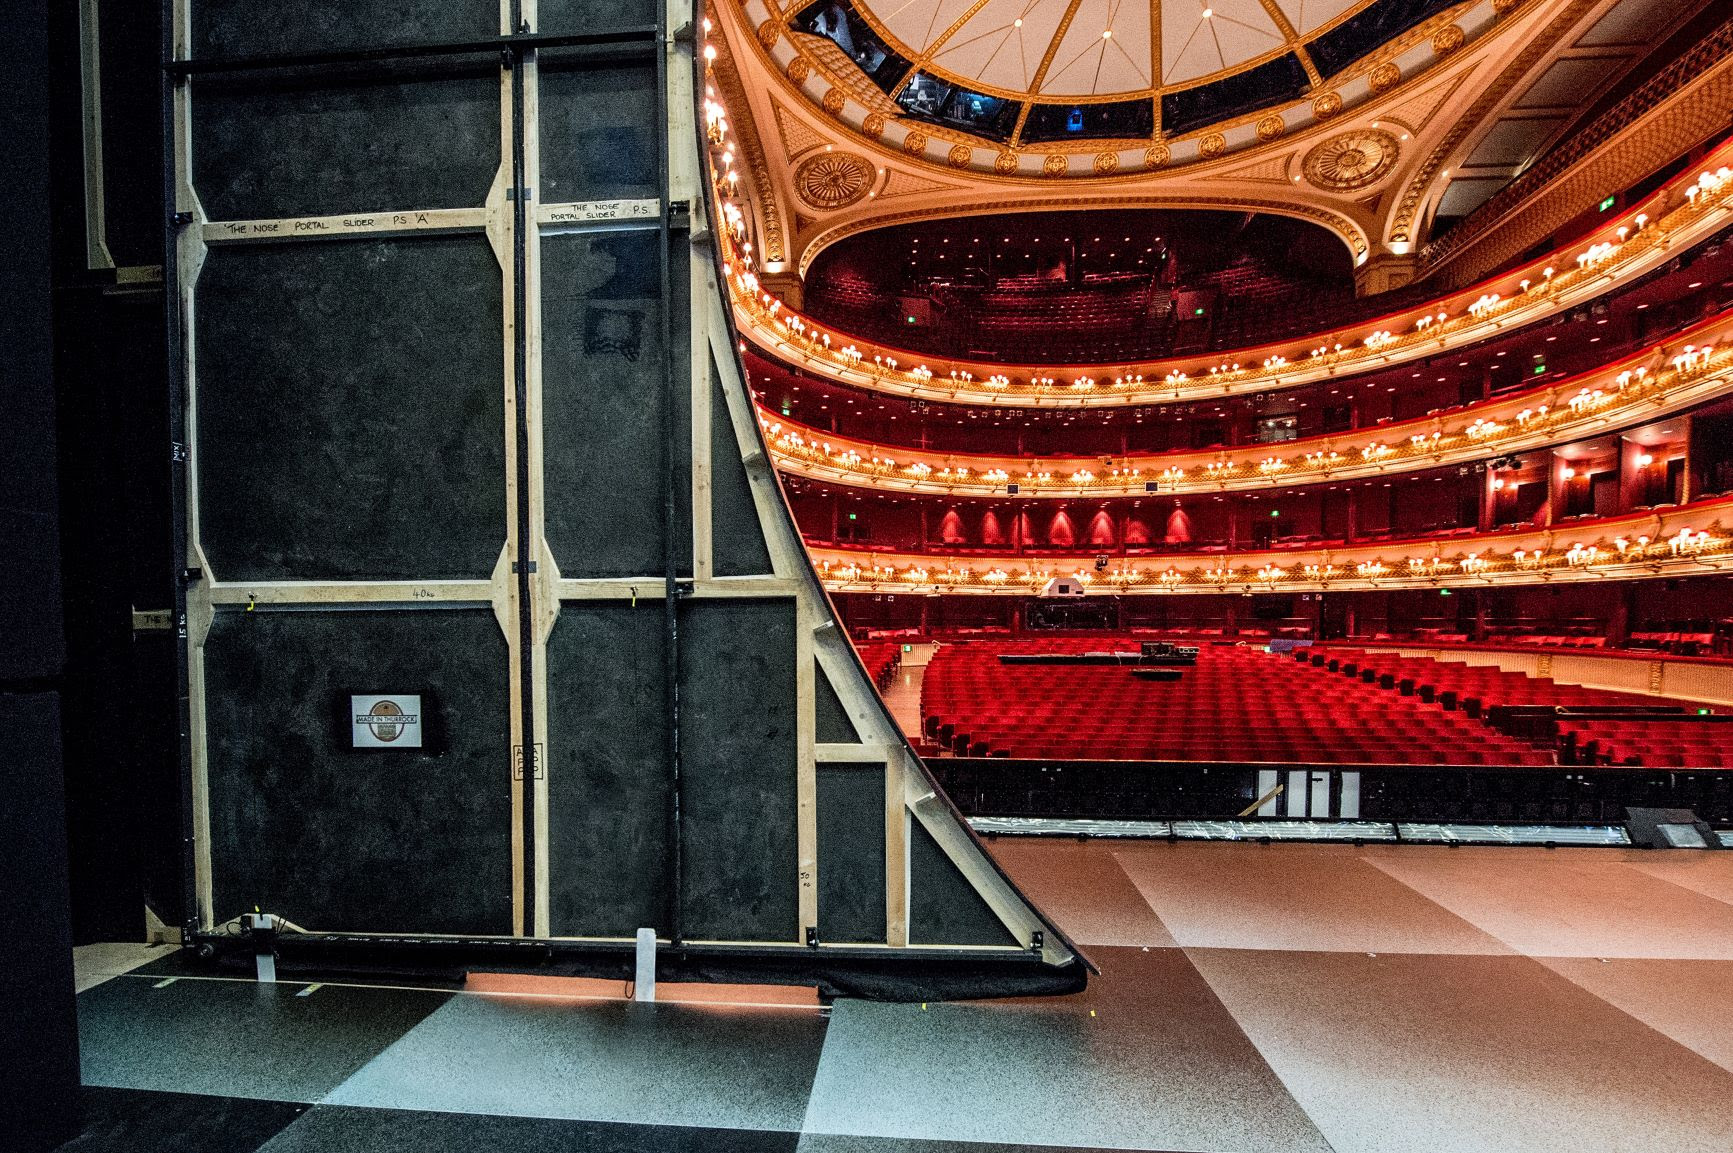 live-from-the-royal-opera-house-c-roh-20